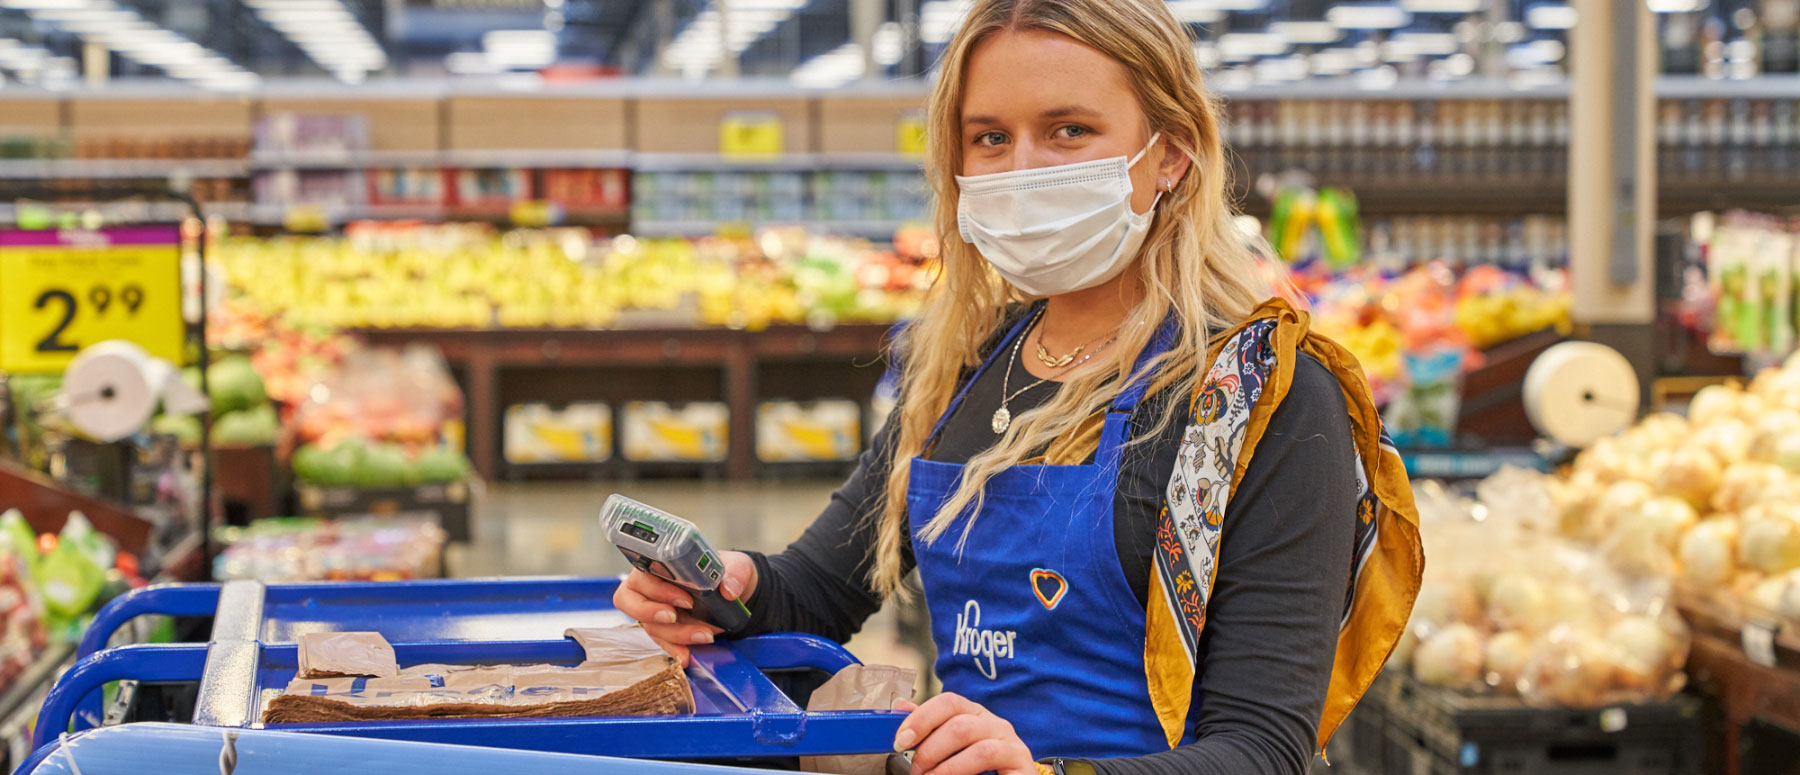 Kroger worker wearing mask